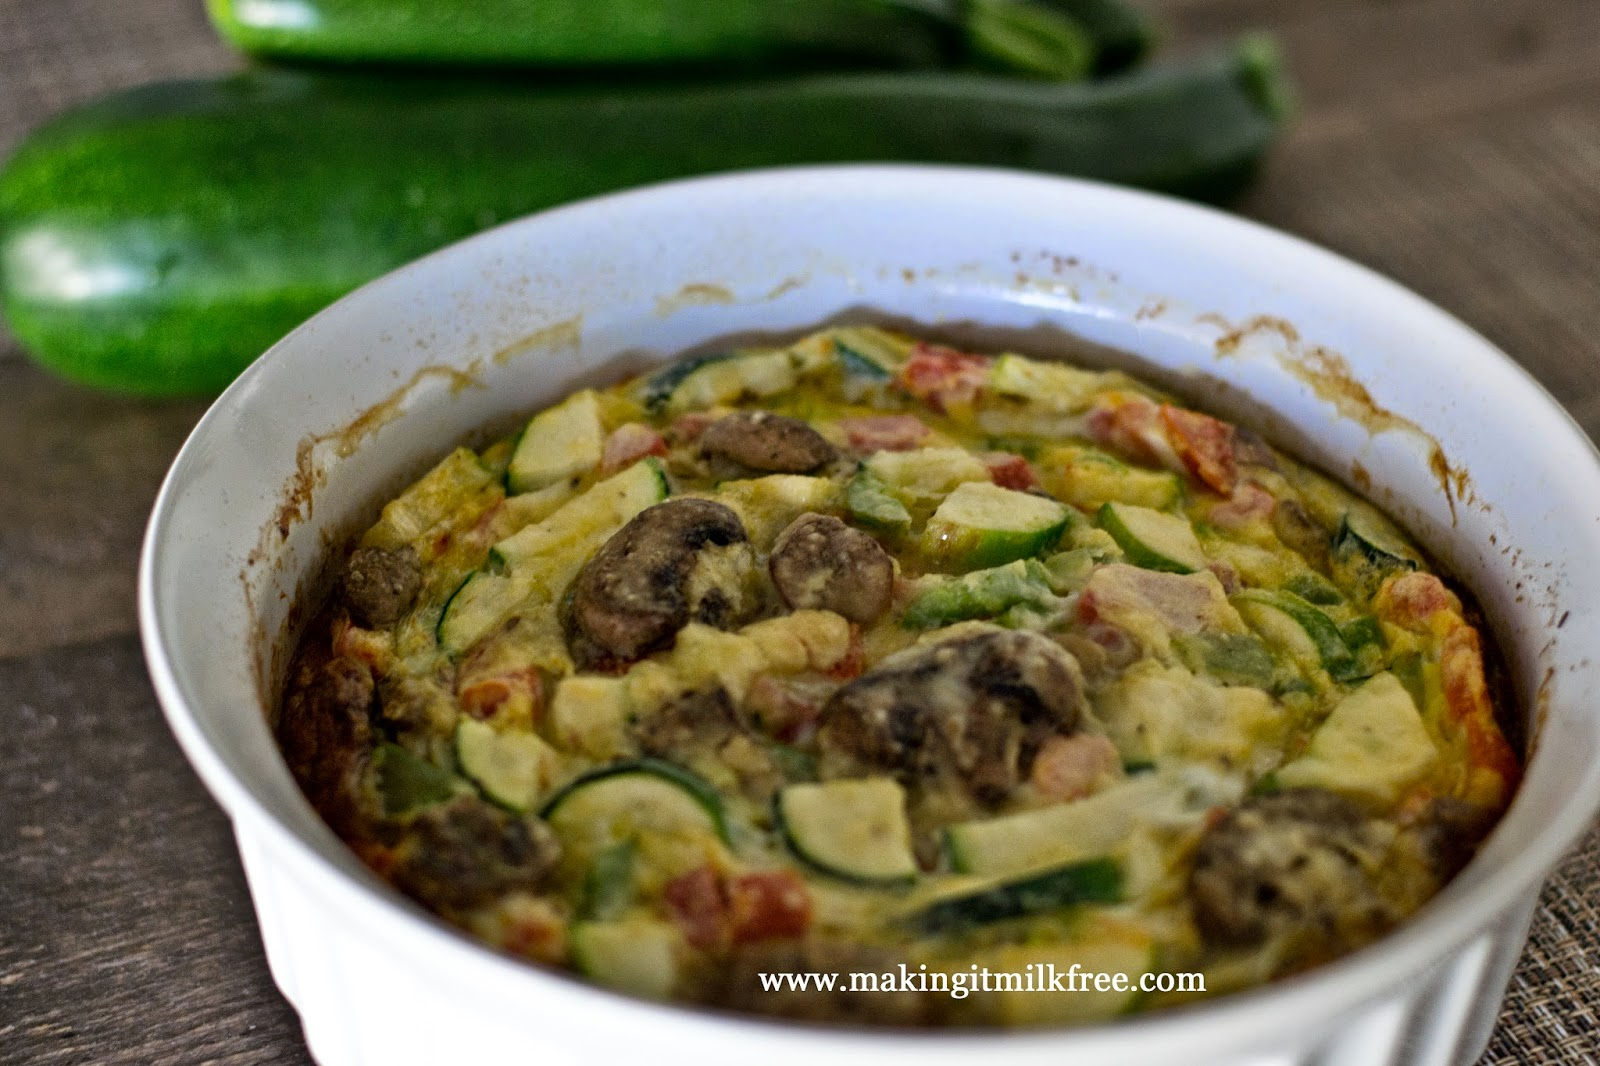 #dairyfree #glutenfree #vegetable #frittata